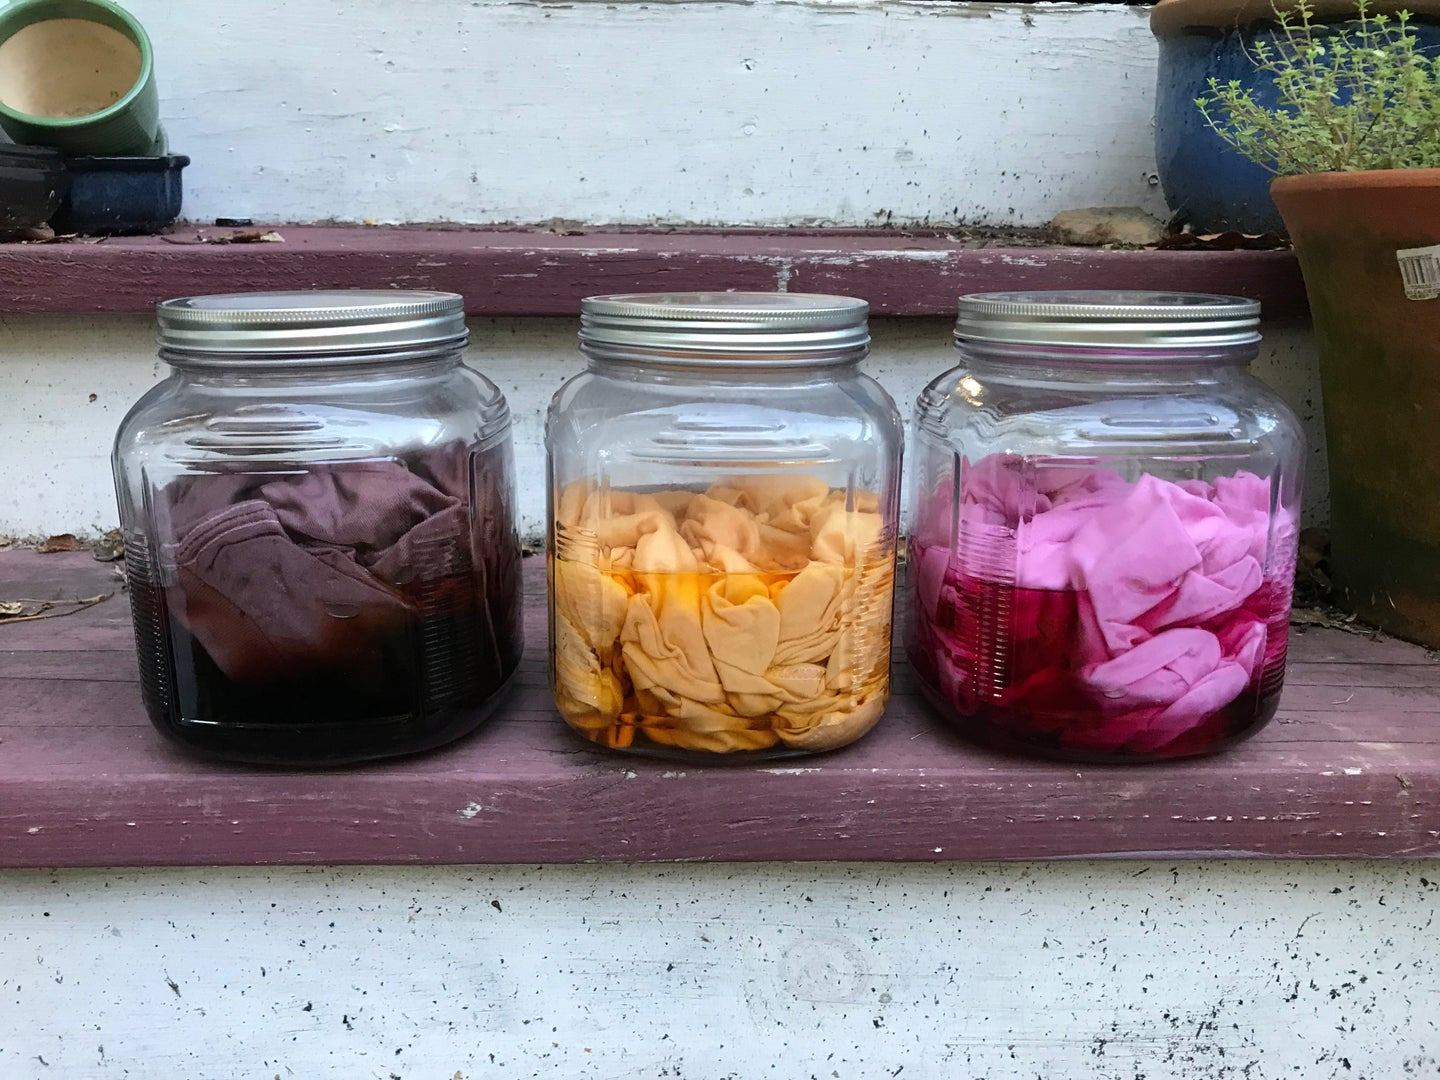 Three mason jars with homemade fabric dye and some dyed shirts inside them. From left to right: purple, orange, and pink.